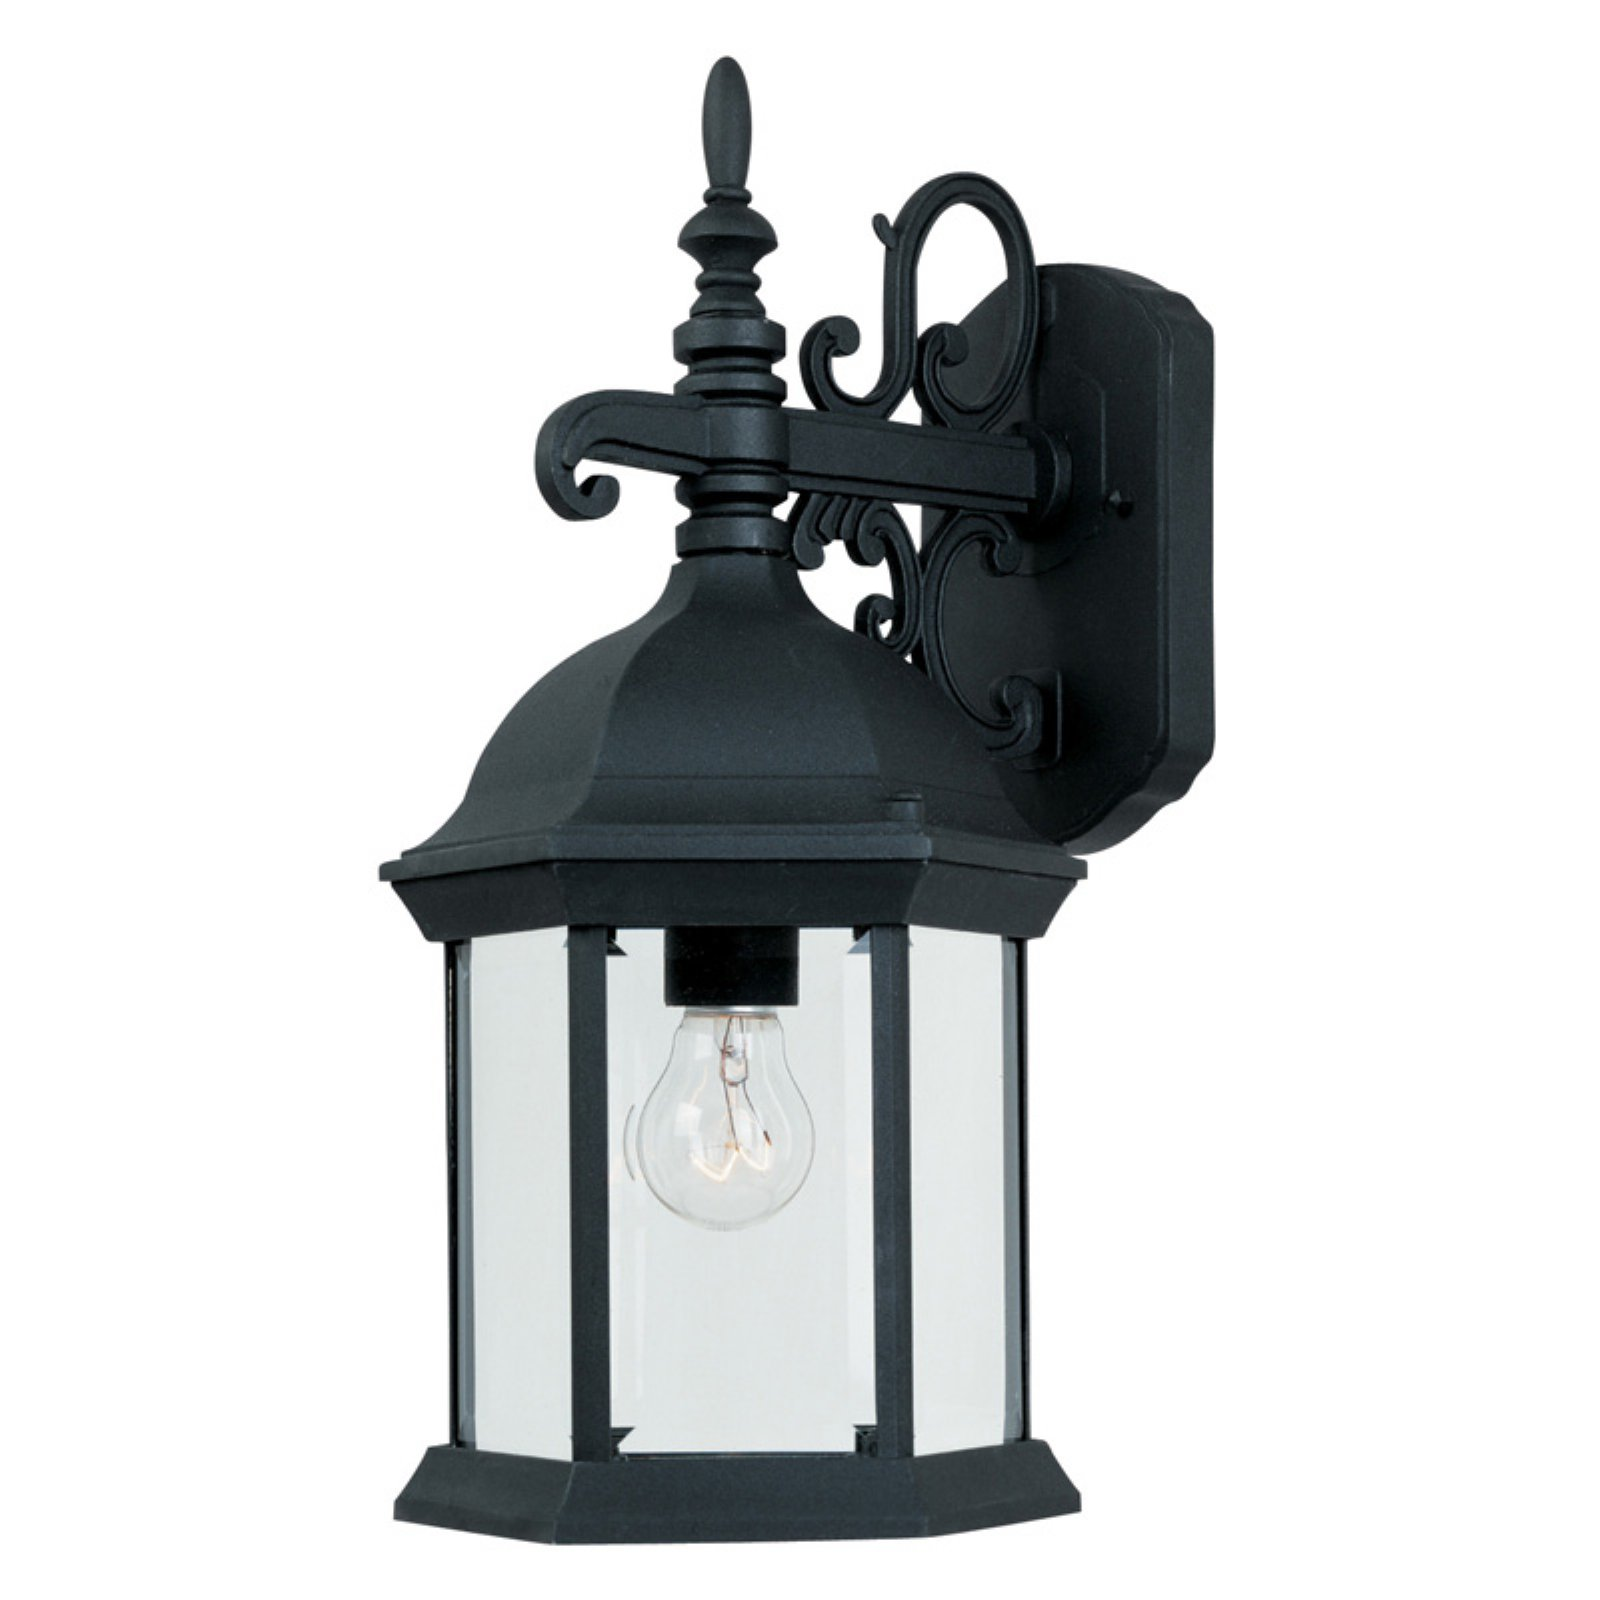 Designers Fountain Outdoor 2971-BK Devonshire Wall Lantern